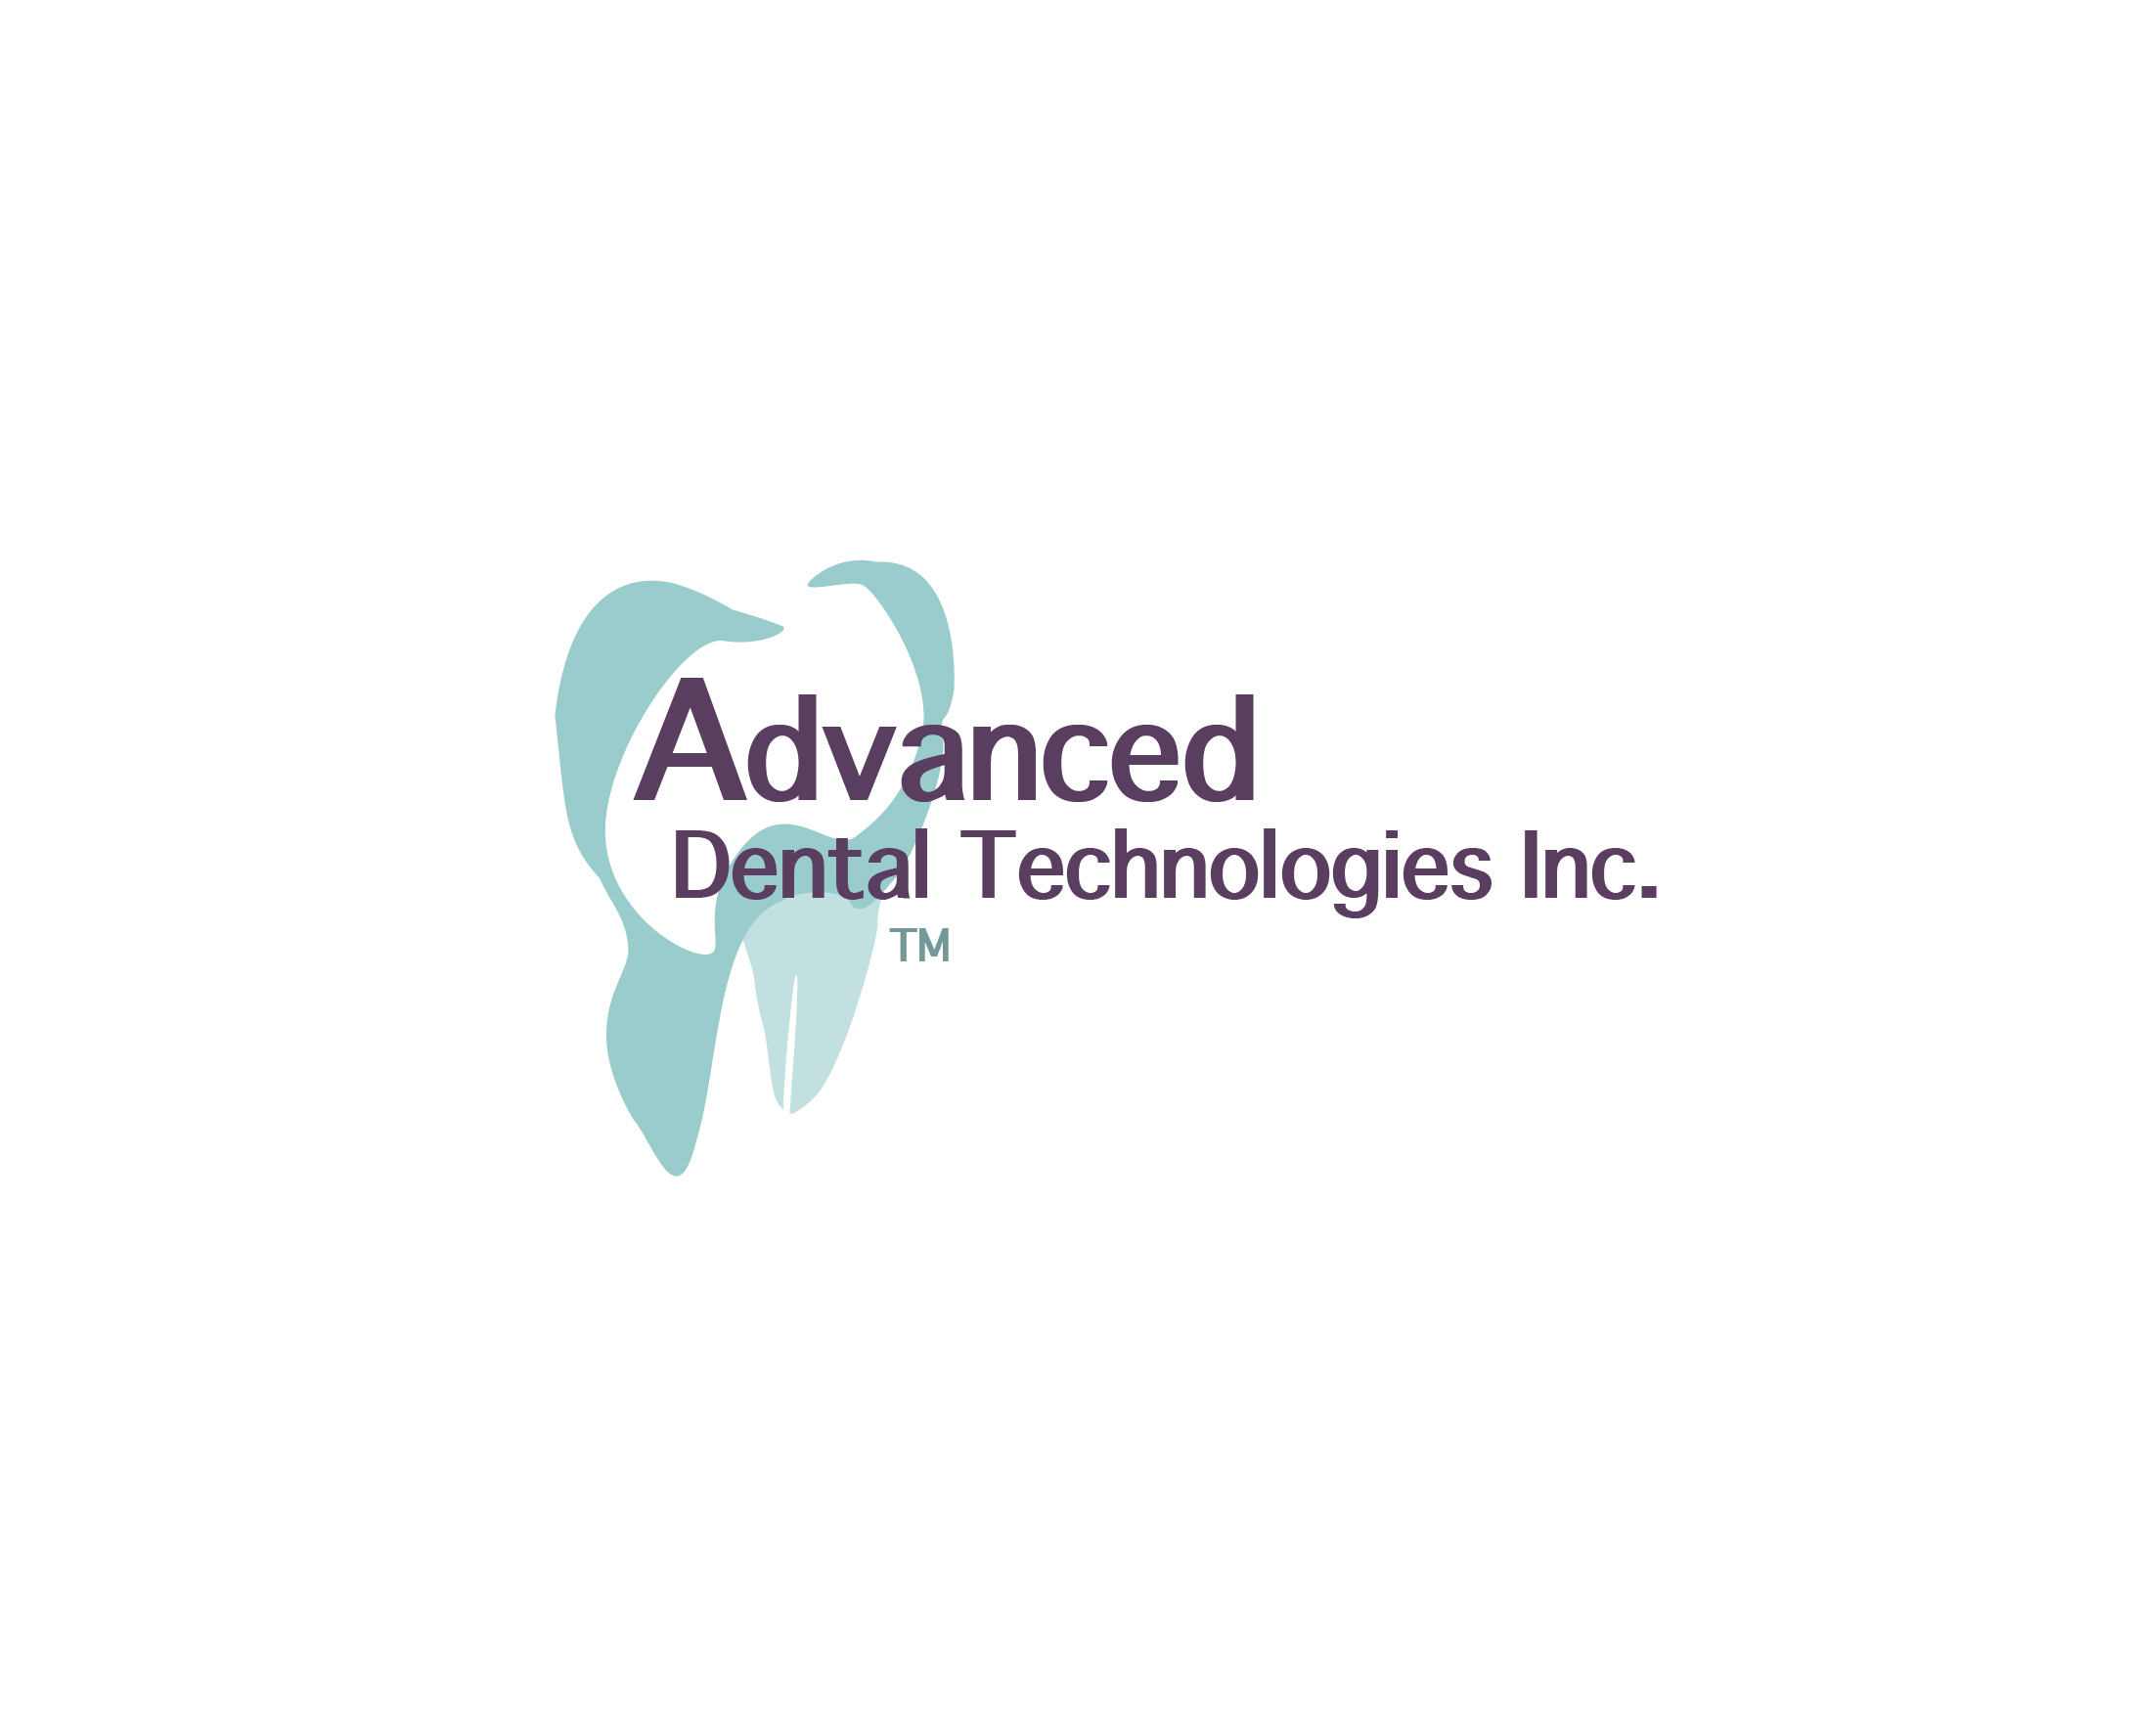 Logo Design by Nancy Grant - Entry No. 73 in the Logo Design Contest Fun Logo Design for Advanced Dental Technologies Inc..